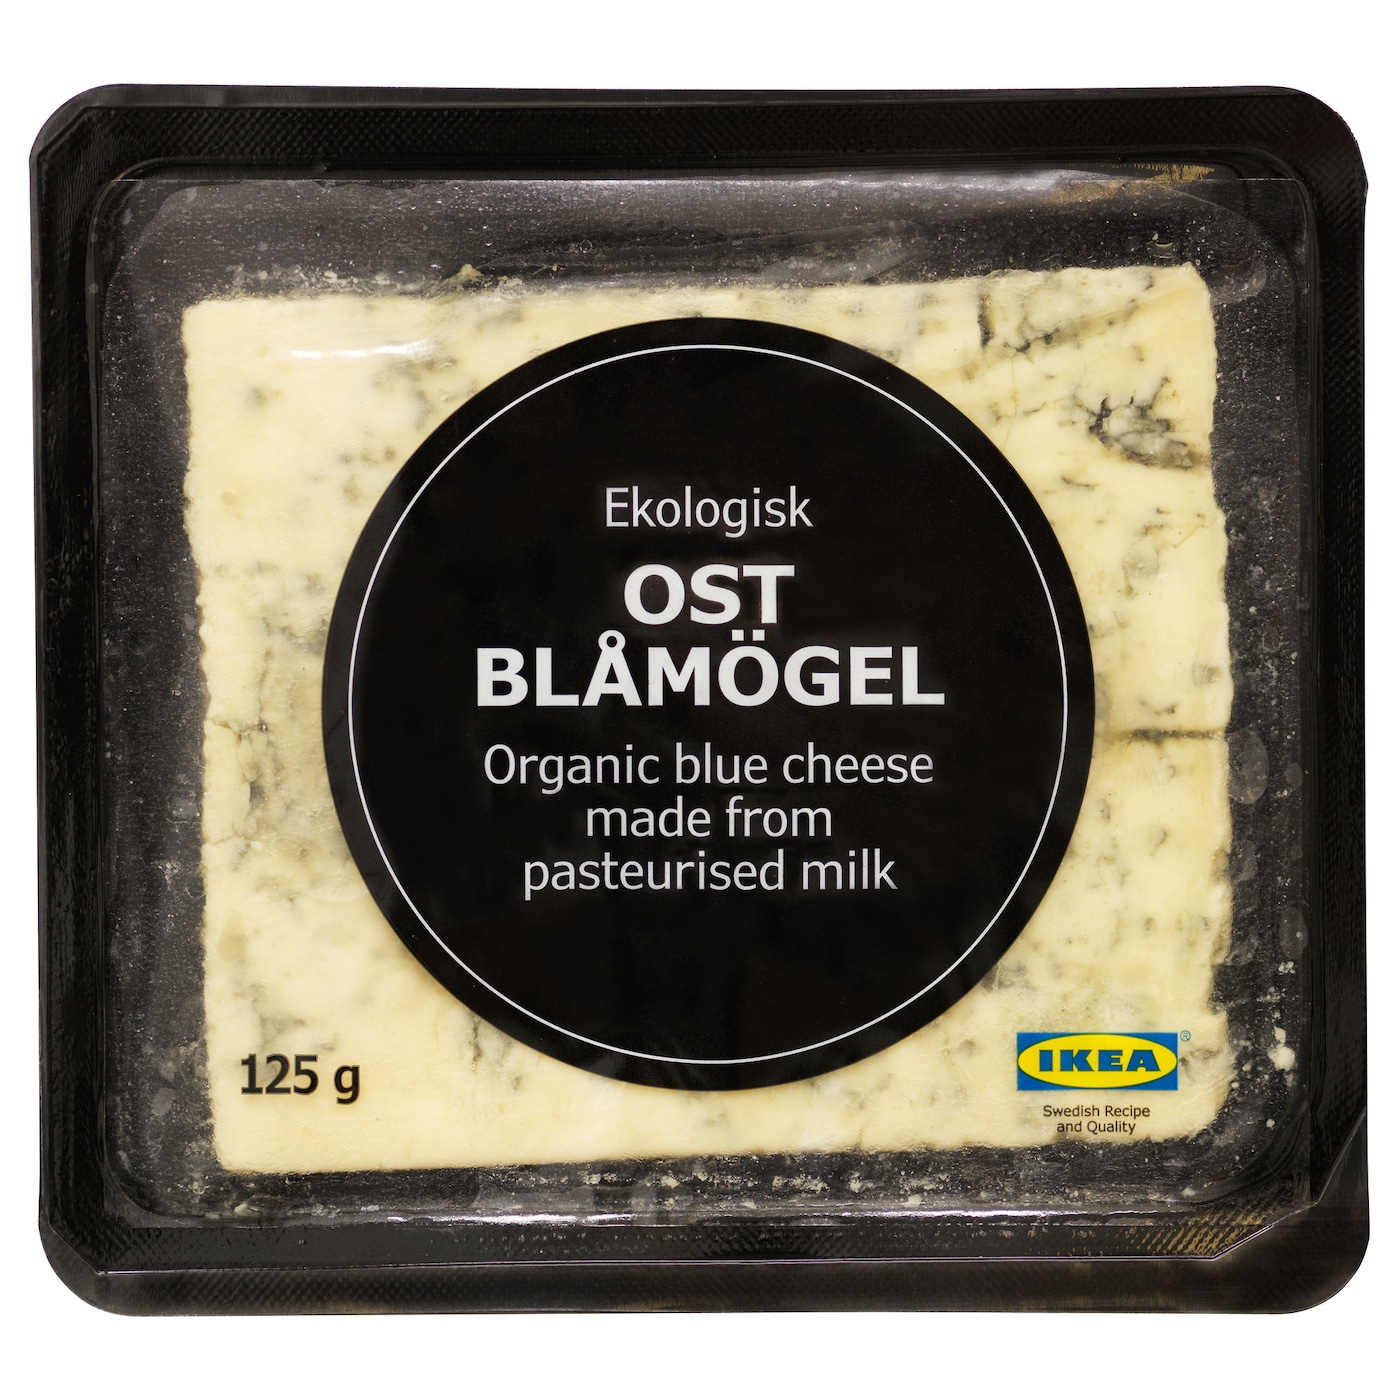 IKEA OST BLÅMÖGEL blue cheese